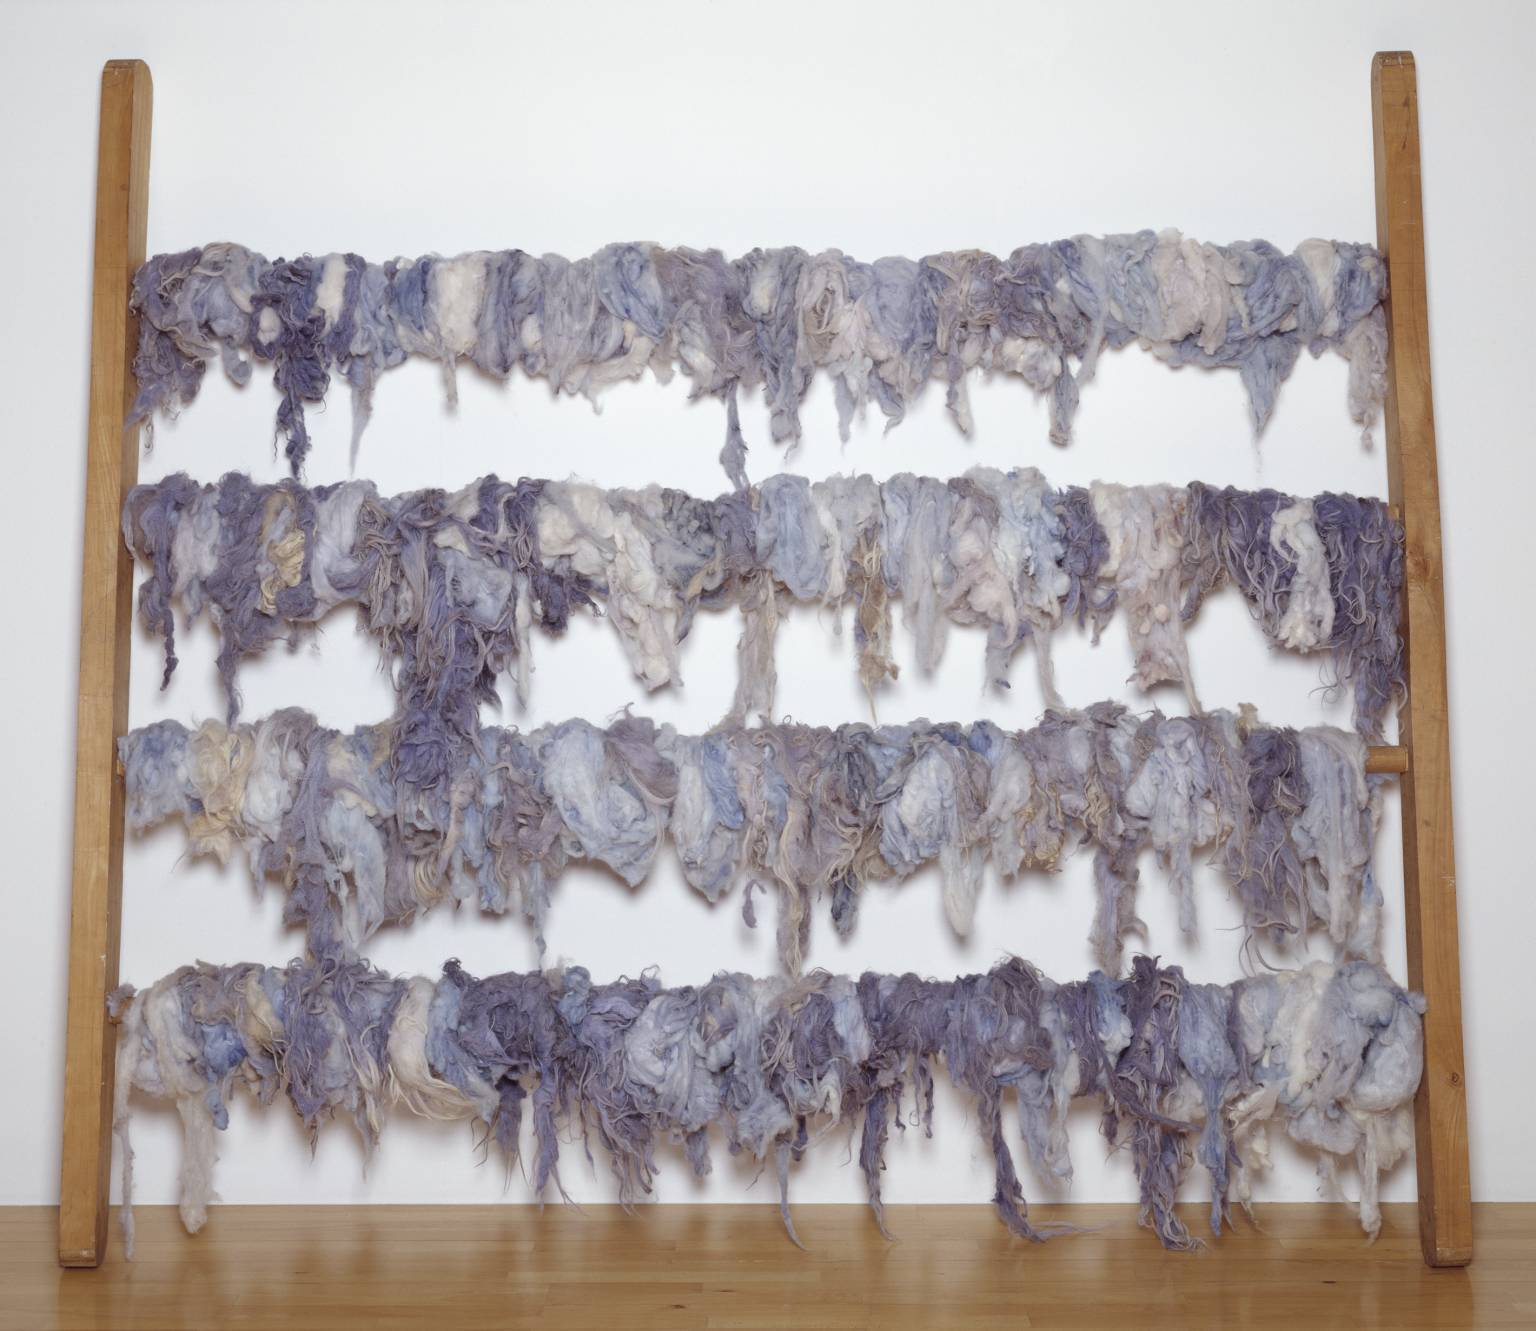 Jannis Kounellis (1968)  Untitled.  Wood and wool.